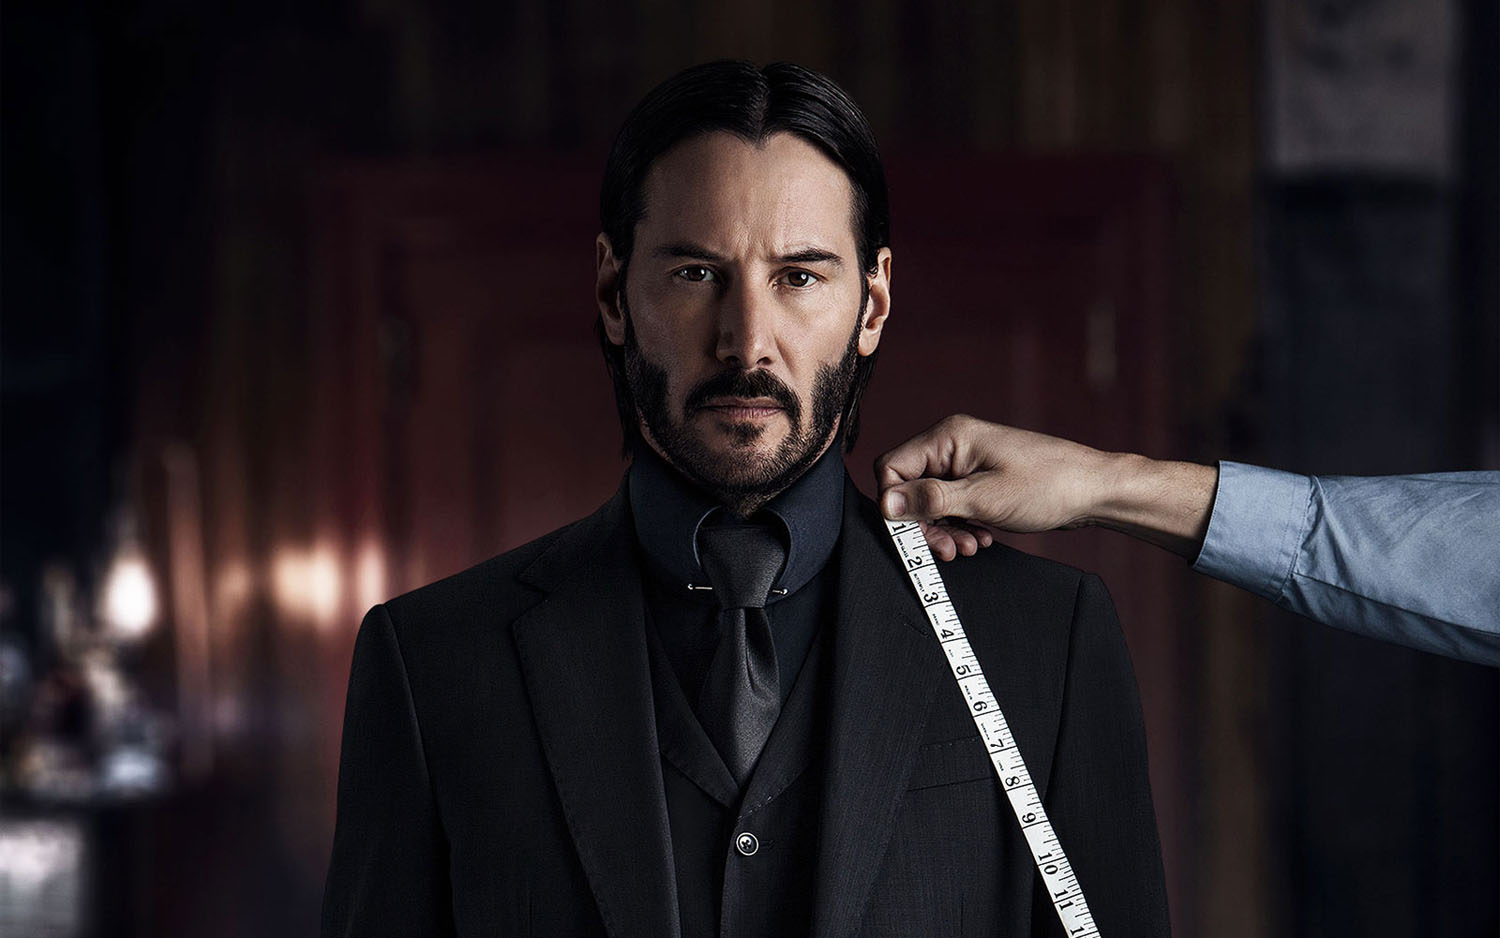 John Wick Chapter 3 - Parabellum: Tickets Available Now! | Tom's Guide